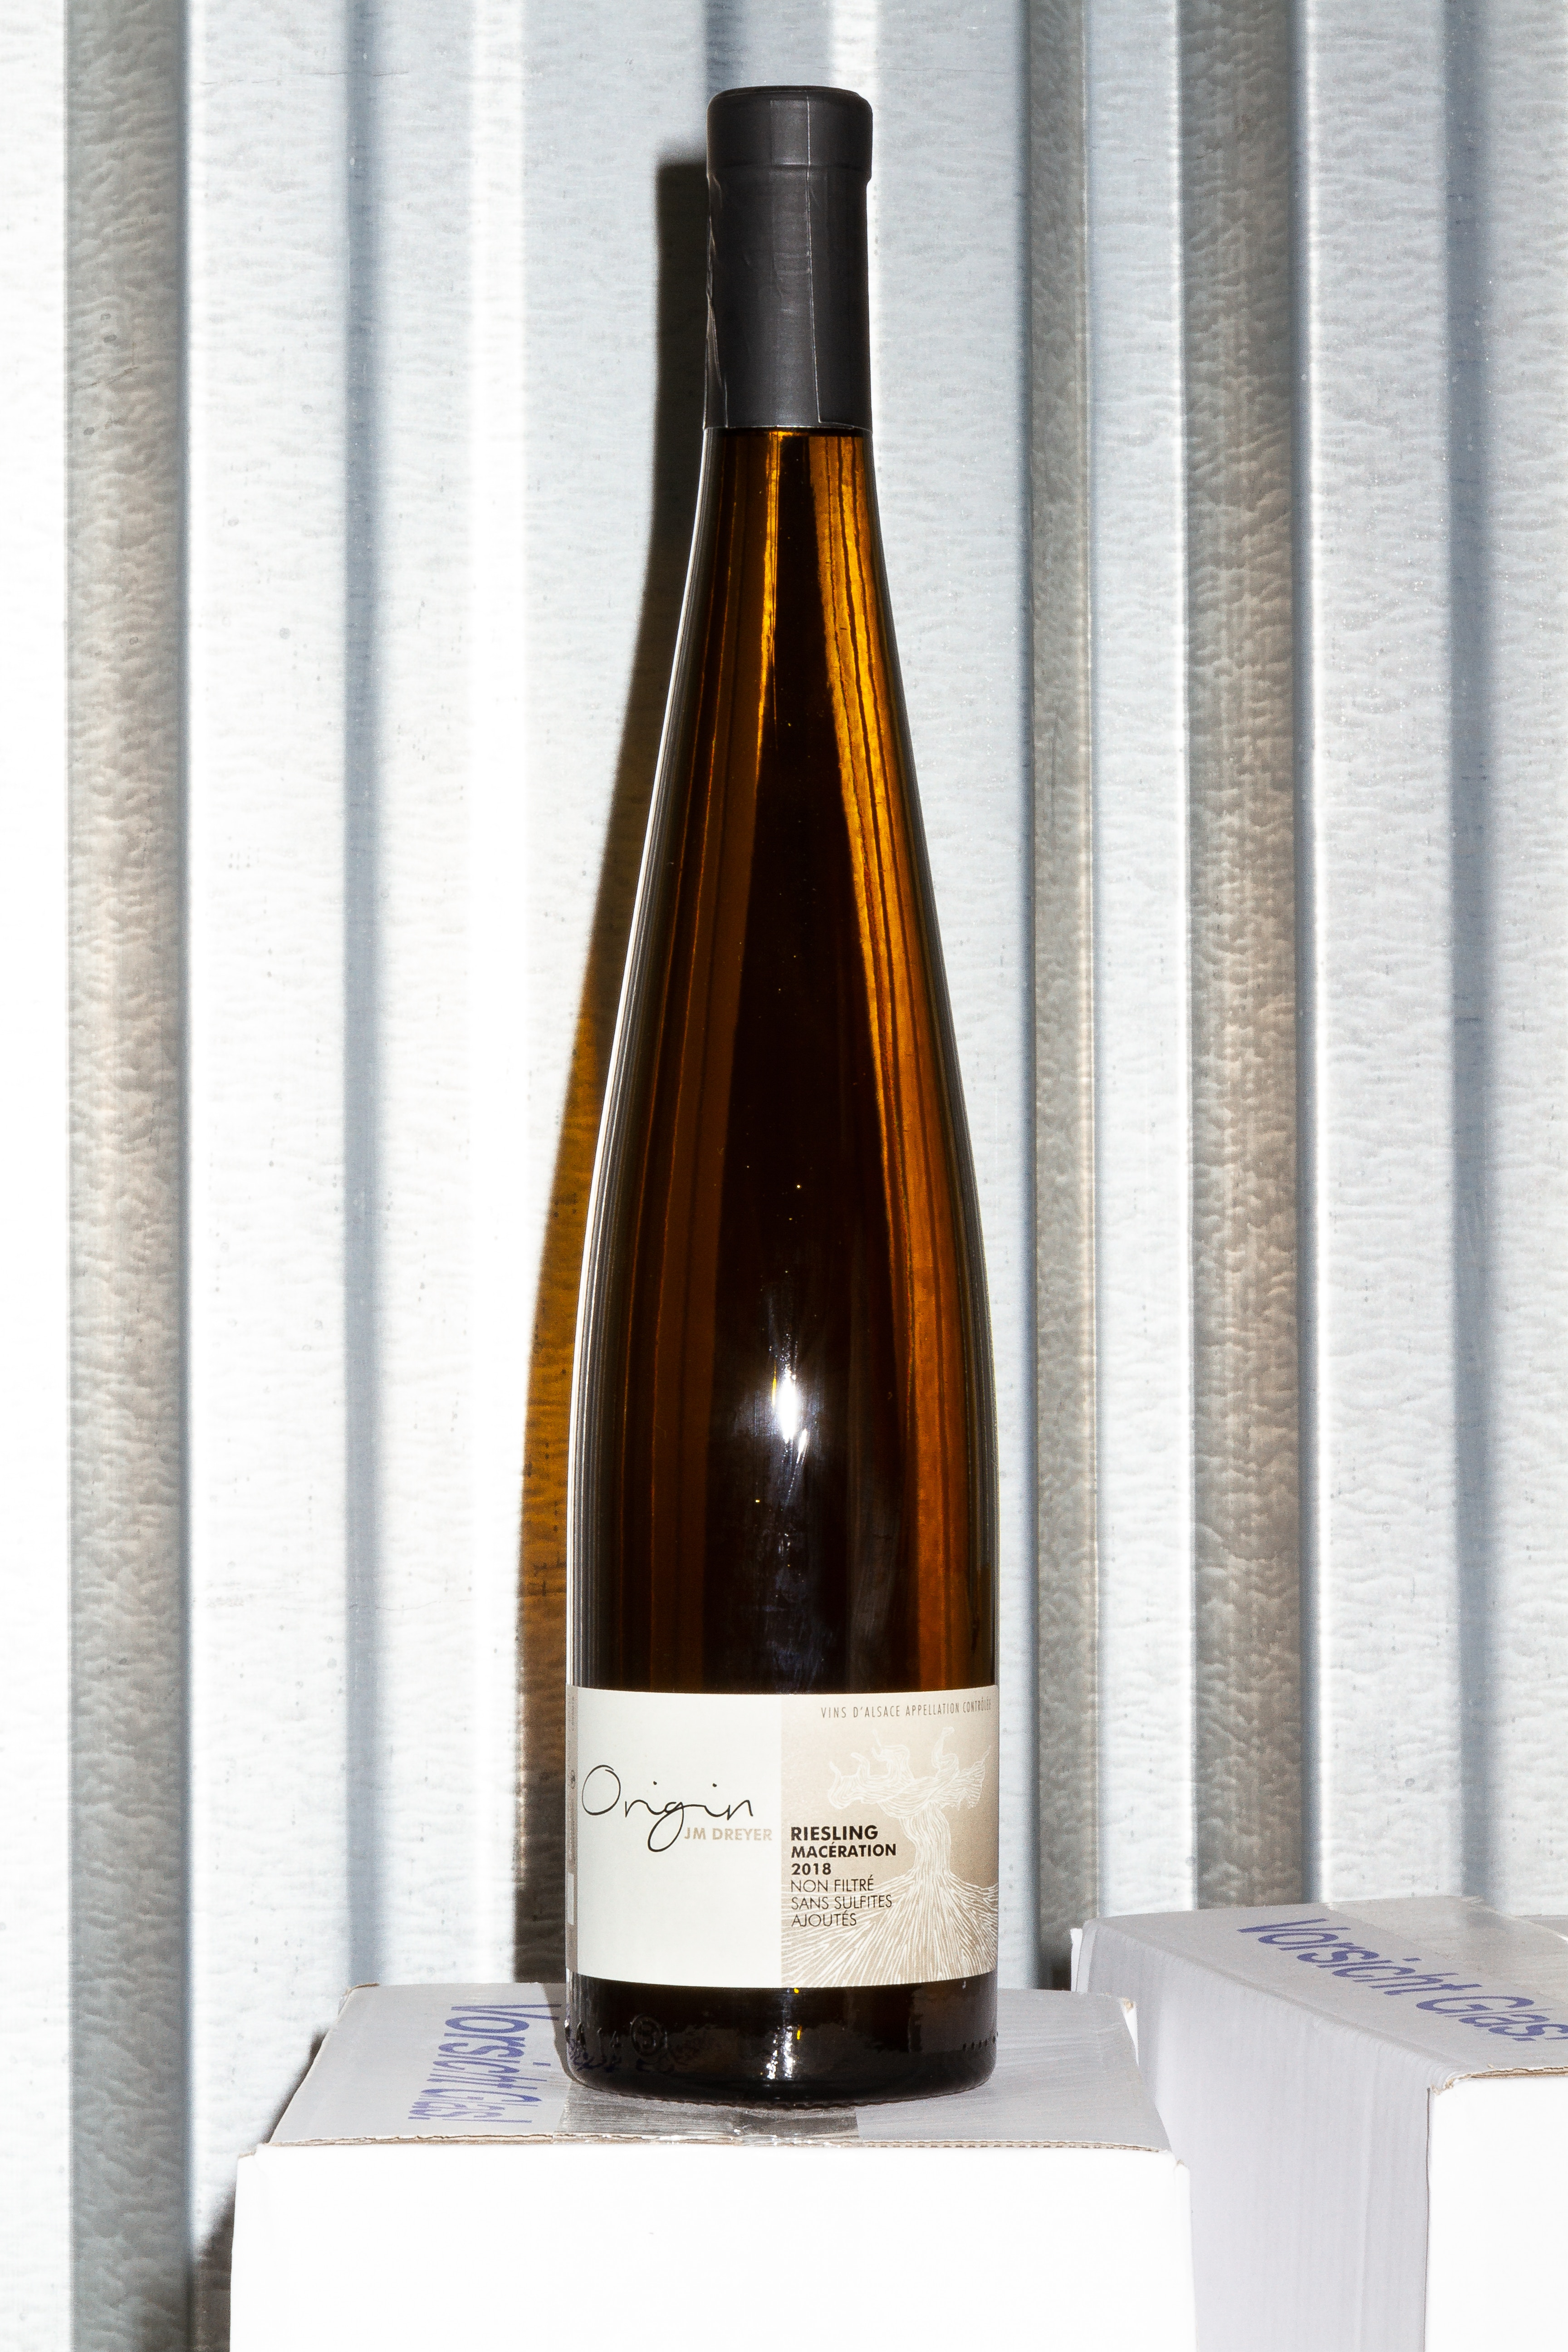 Riesling Origin 2018 by JM Dreyer